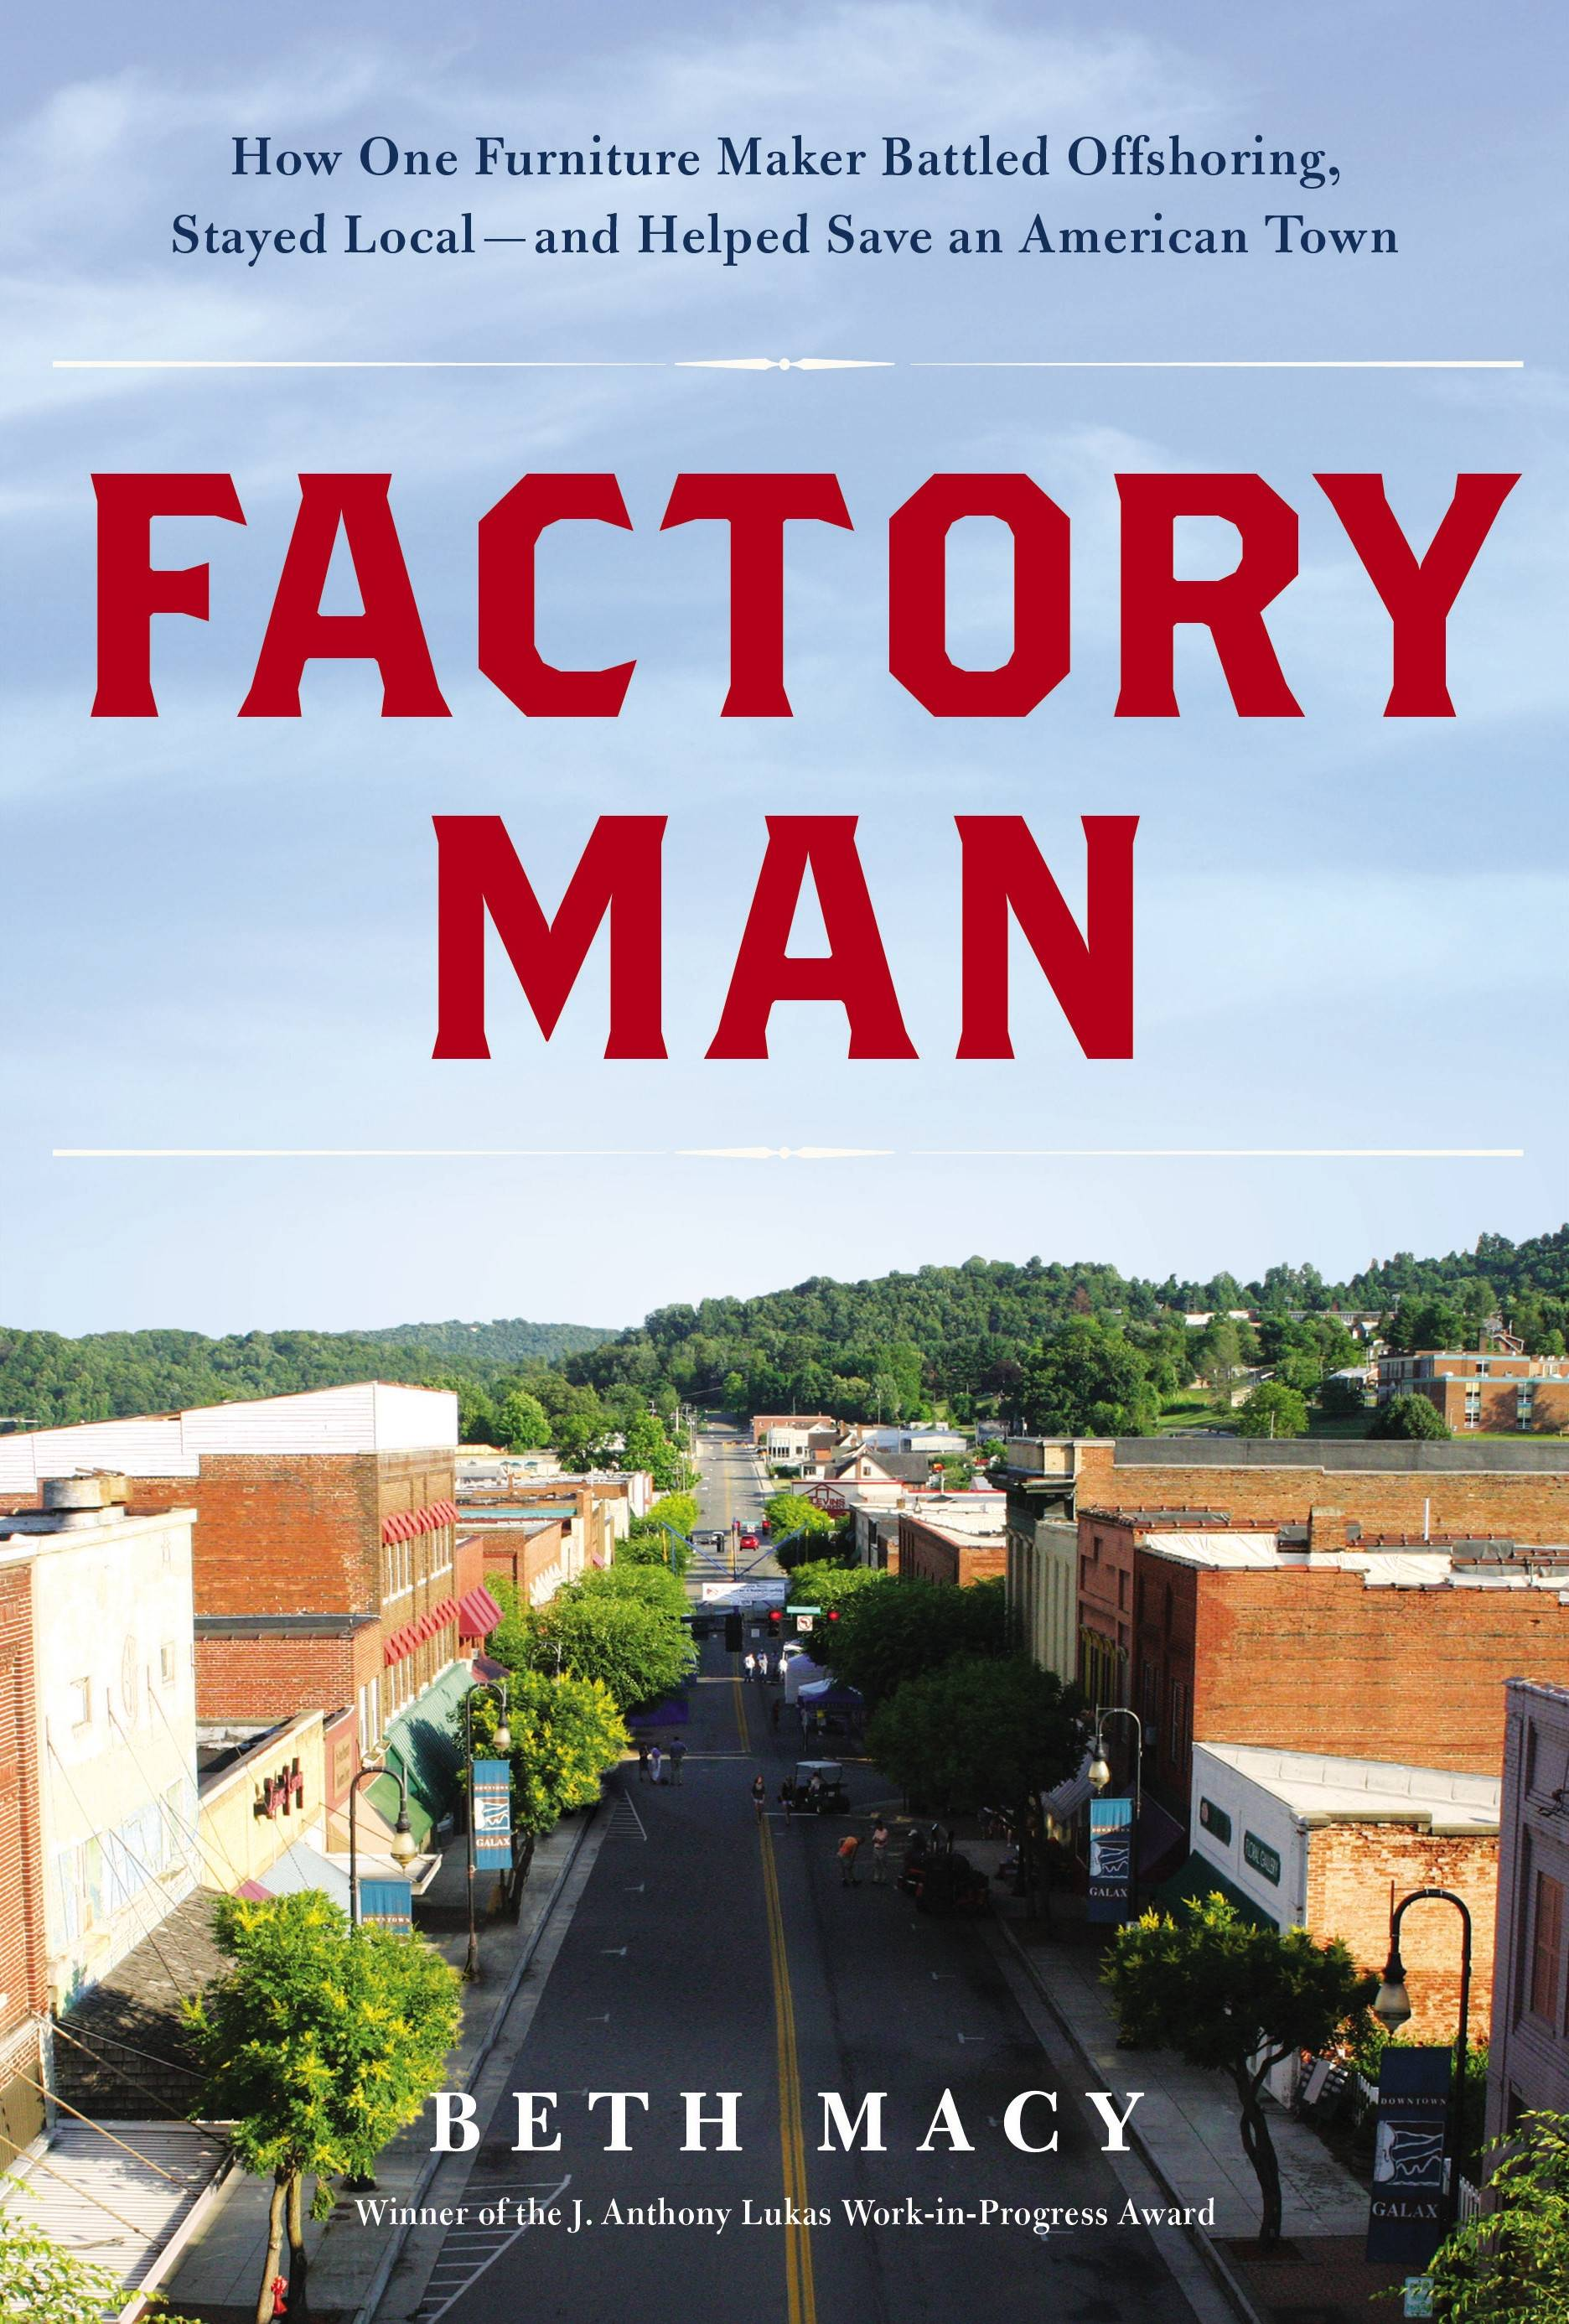 "This book cover image released by Little, Brown and Company shows ""Factory Man: How One Furniture Maker Battled Offshoring, Stayed Local -- and Helped Save an American Town,"" by Beth Macy."